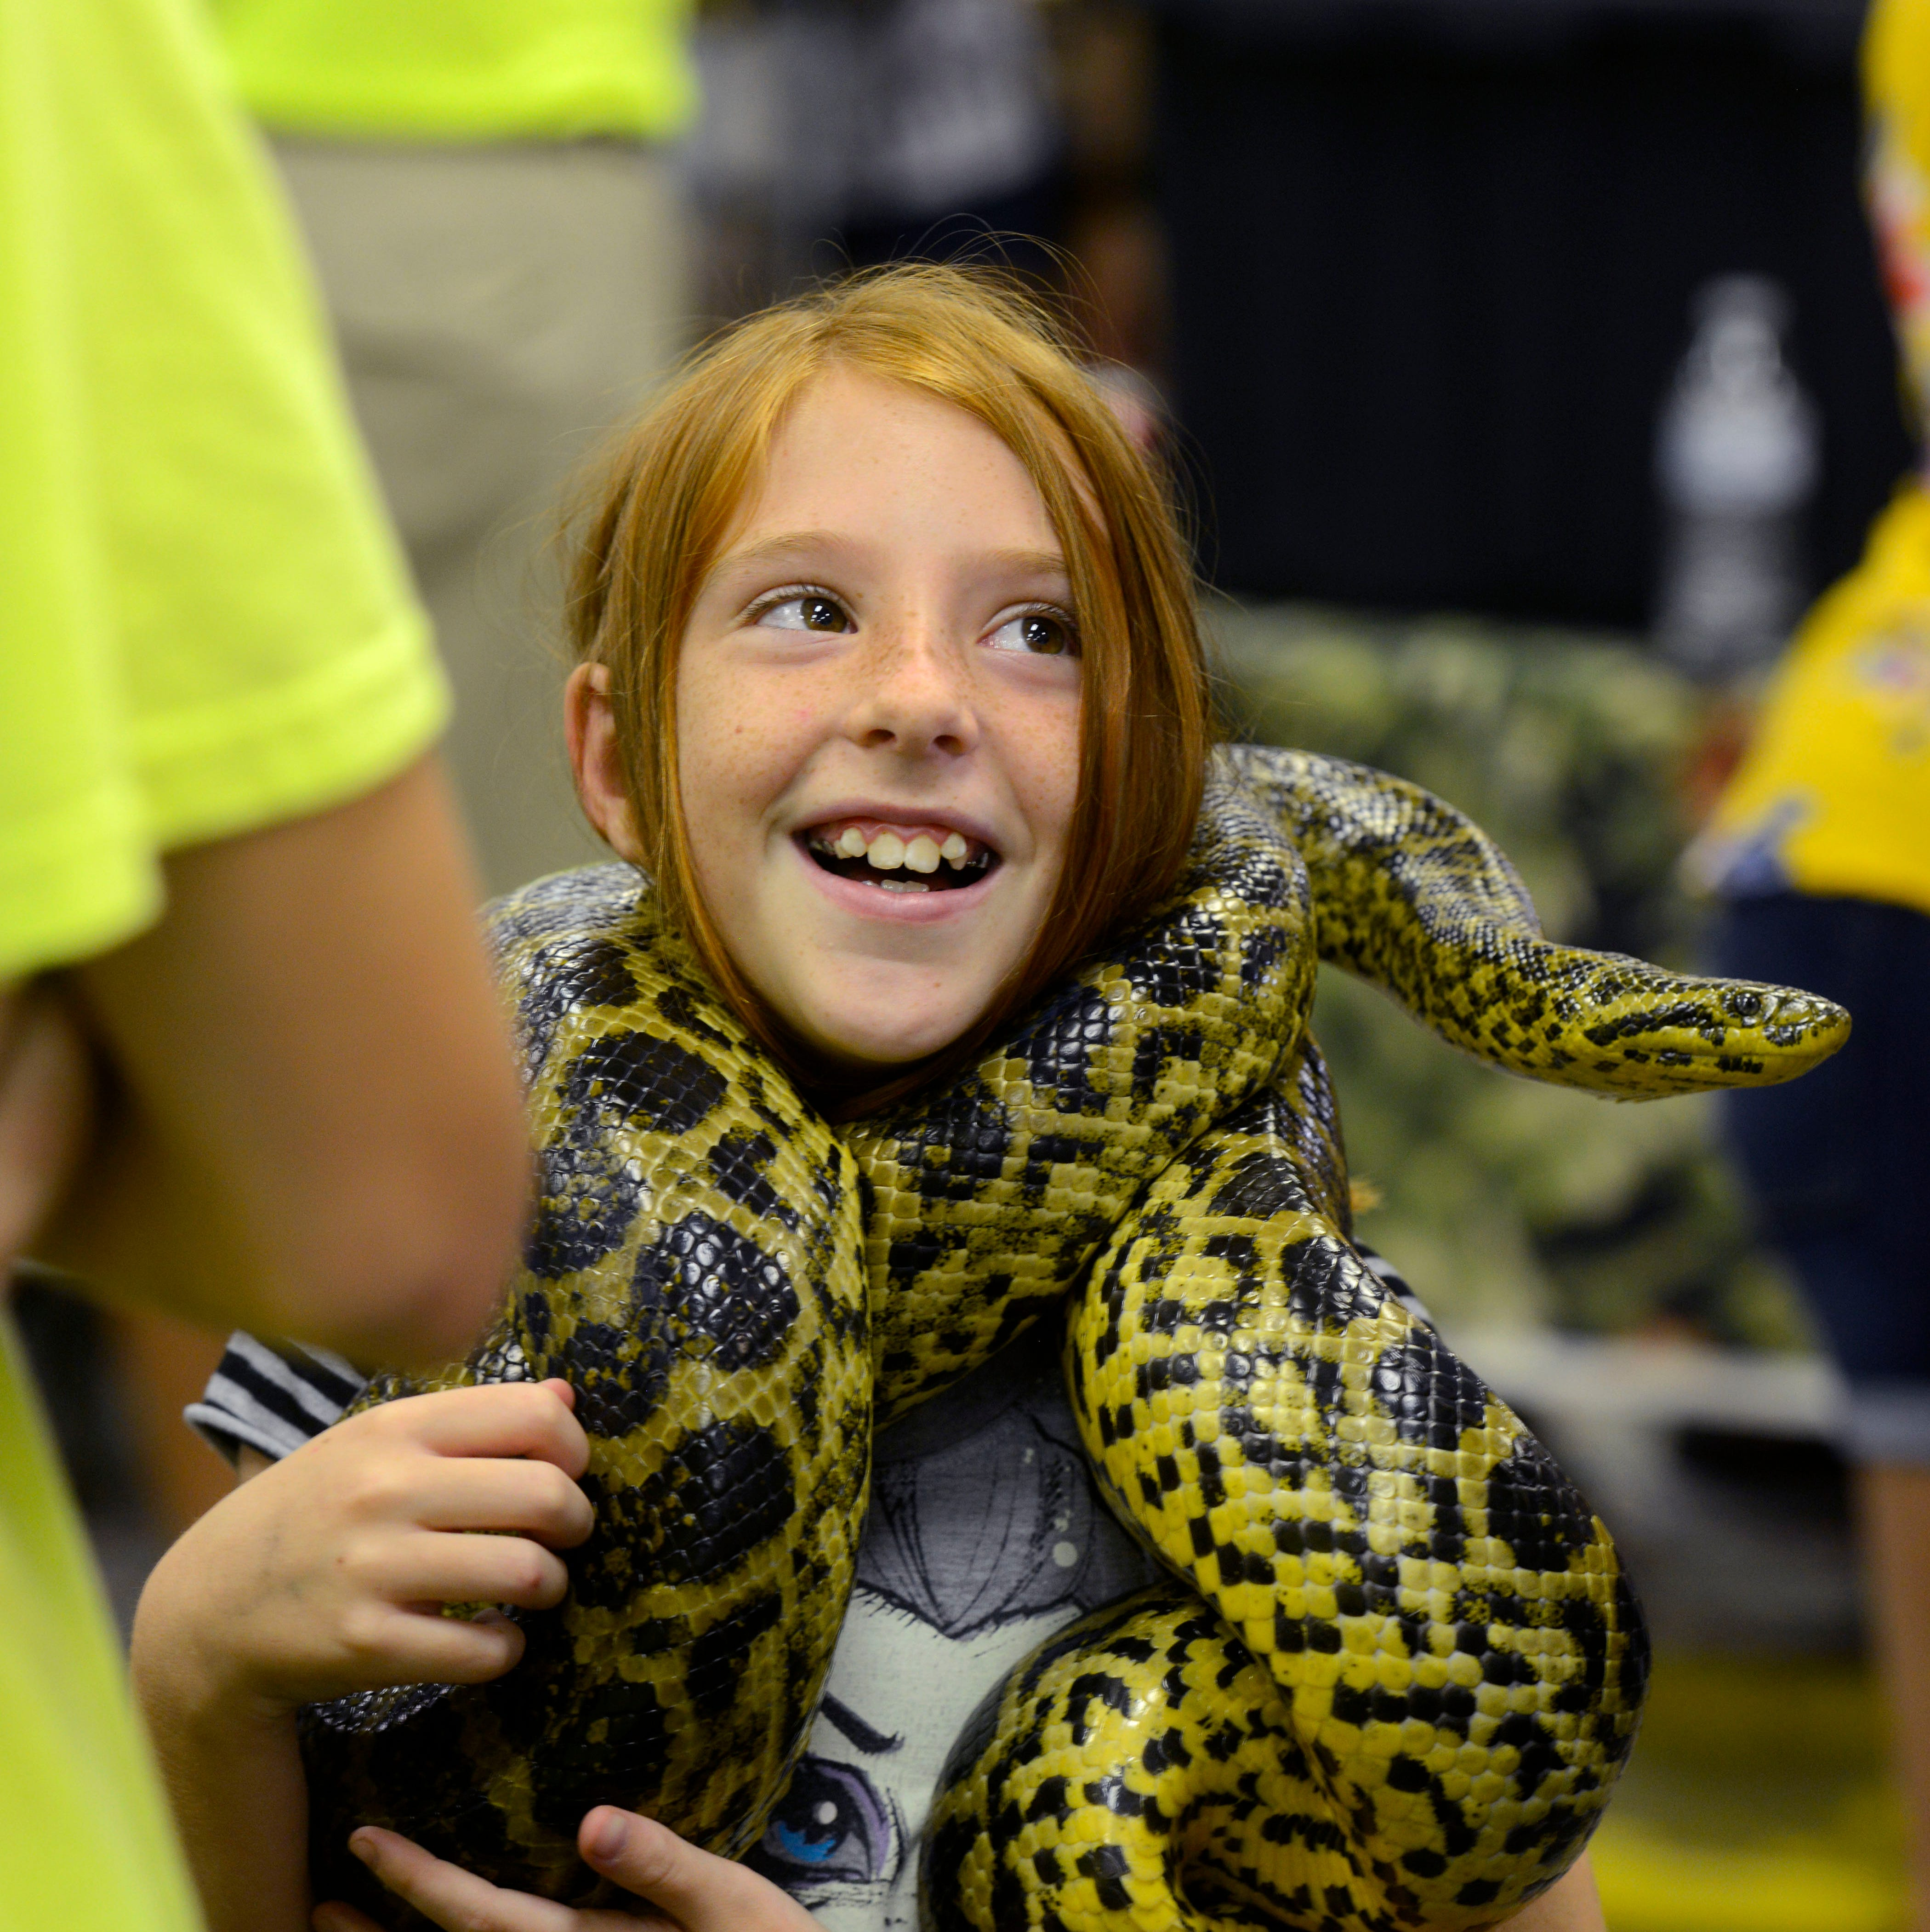 PHOTOS: ReptiDay in Navarre showcases the slithery side of nature